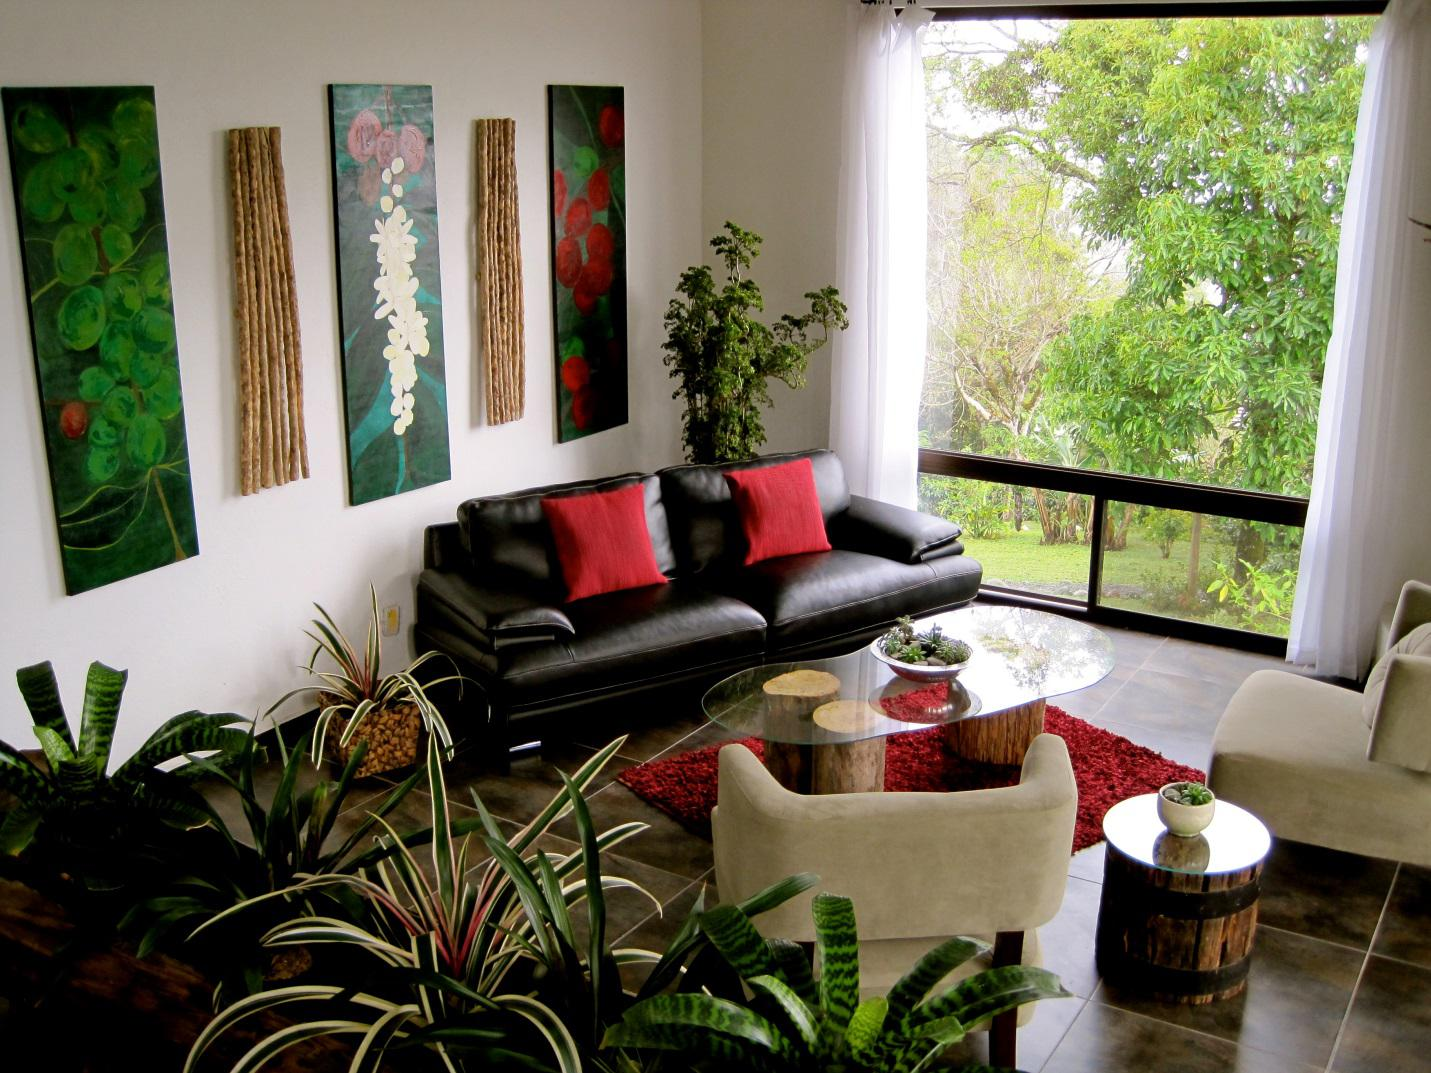 Interior design for our home -  Design Statement Anywhere In Your House Add Exotic Vibes With Bromeliads